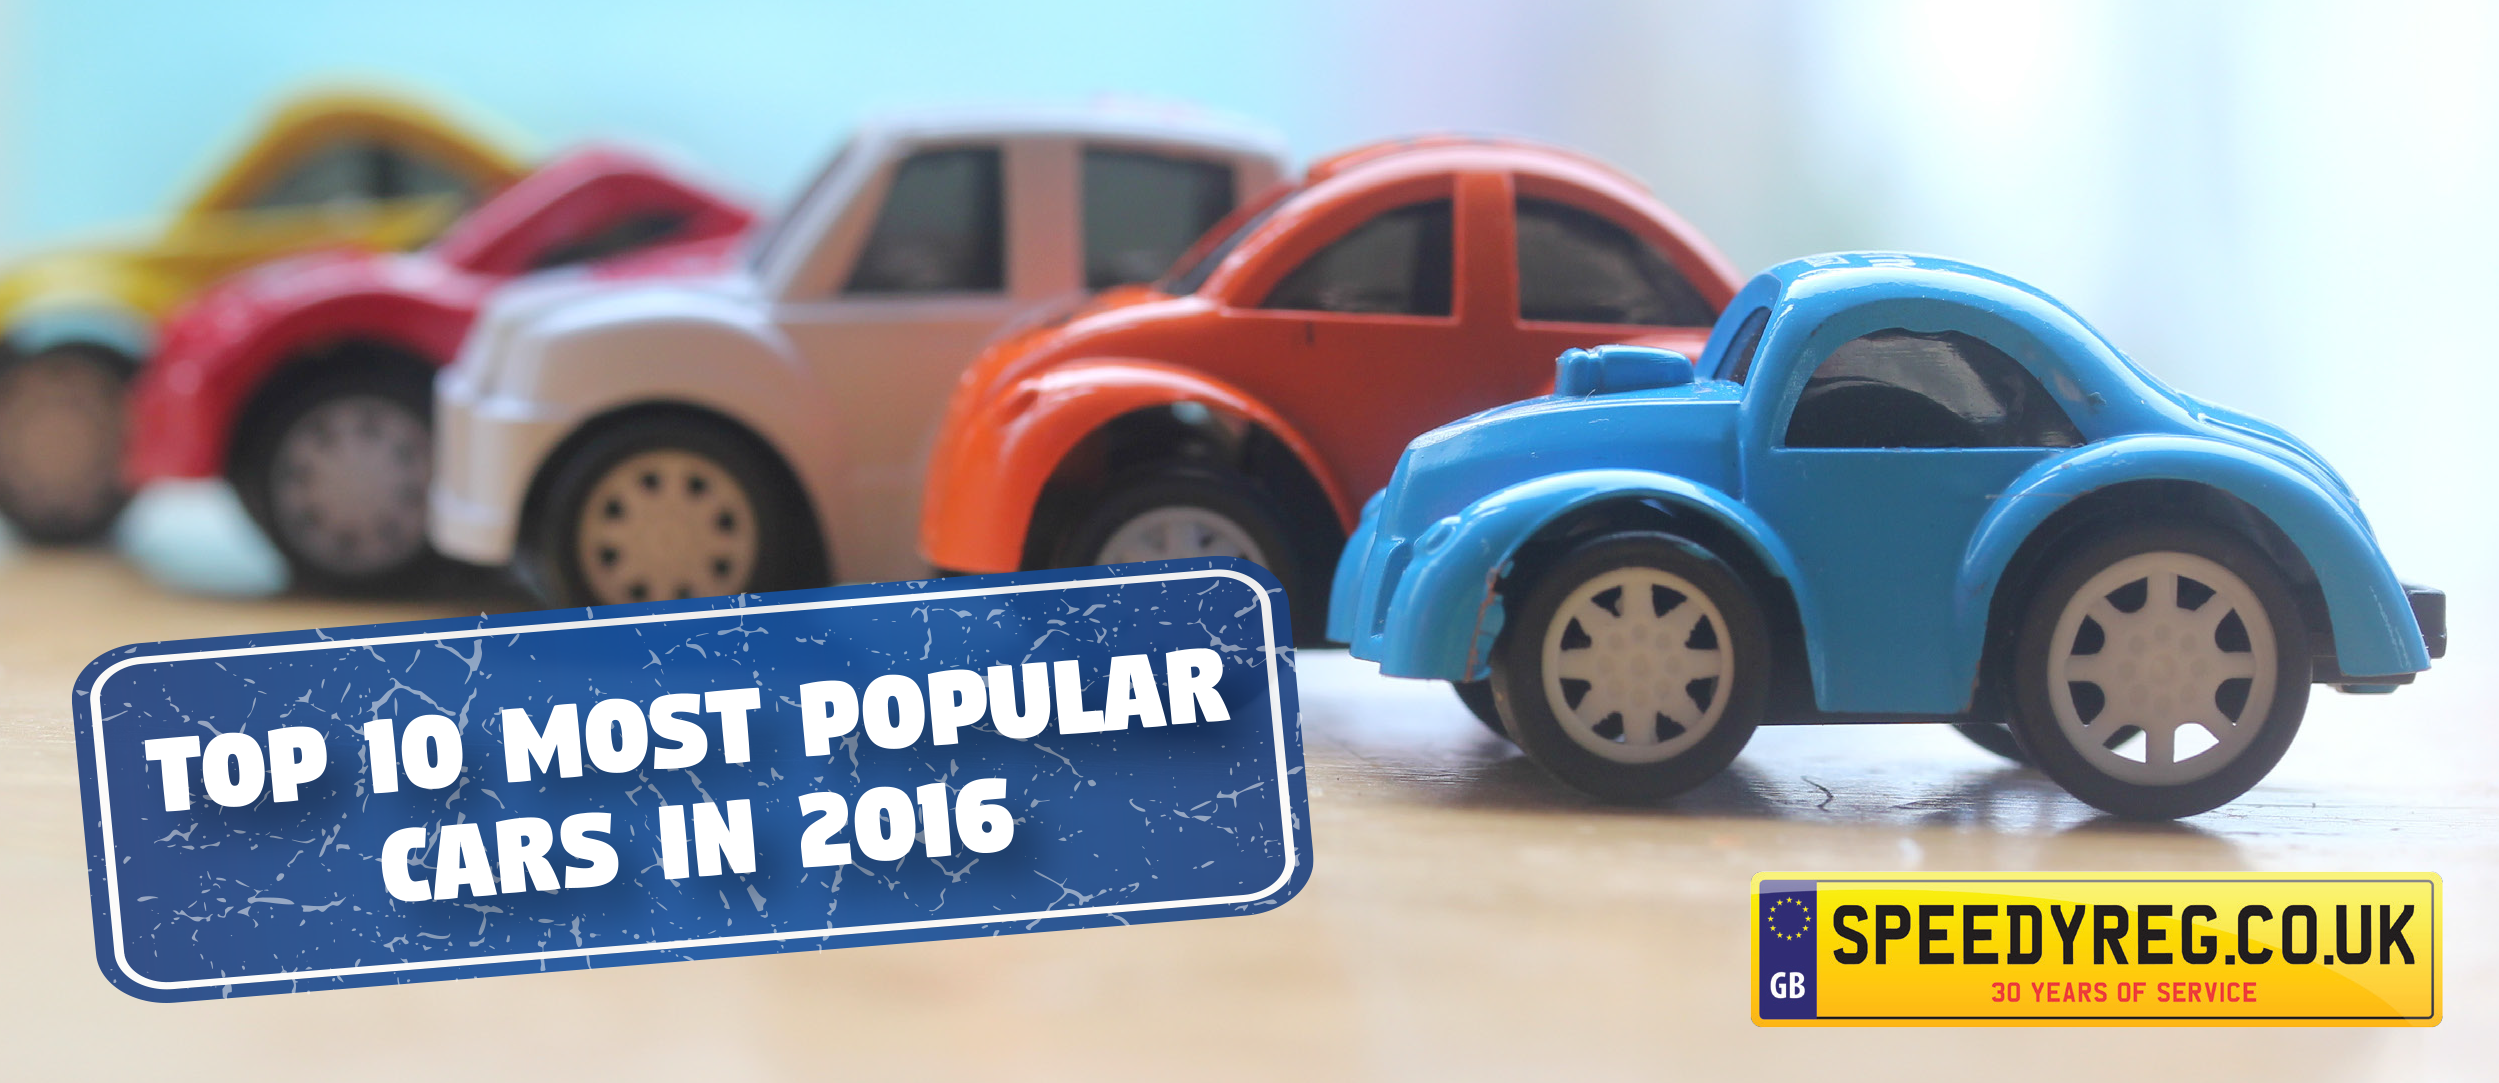 5-top-10-most-popular-cars-in-2016